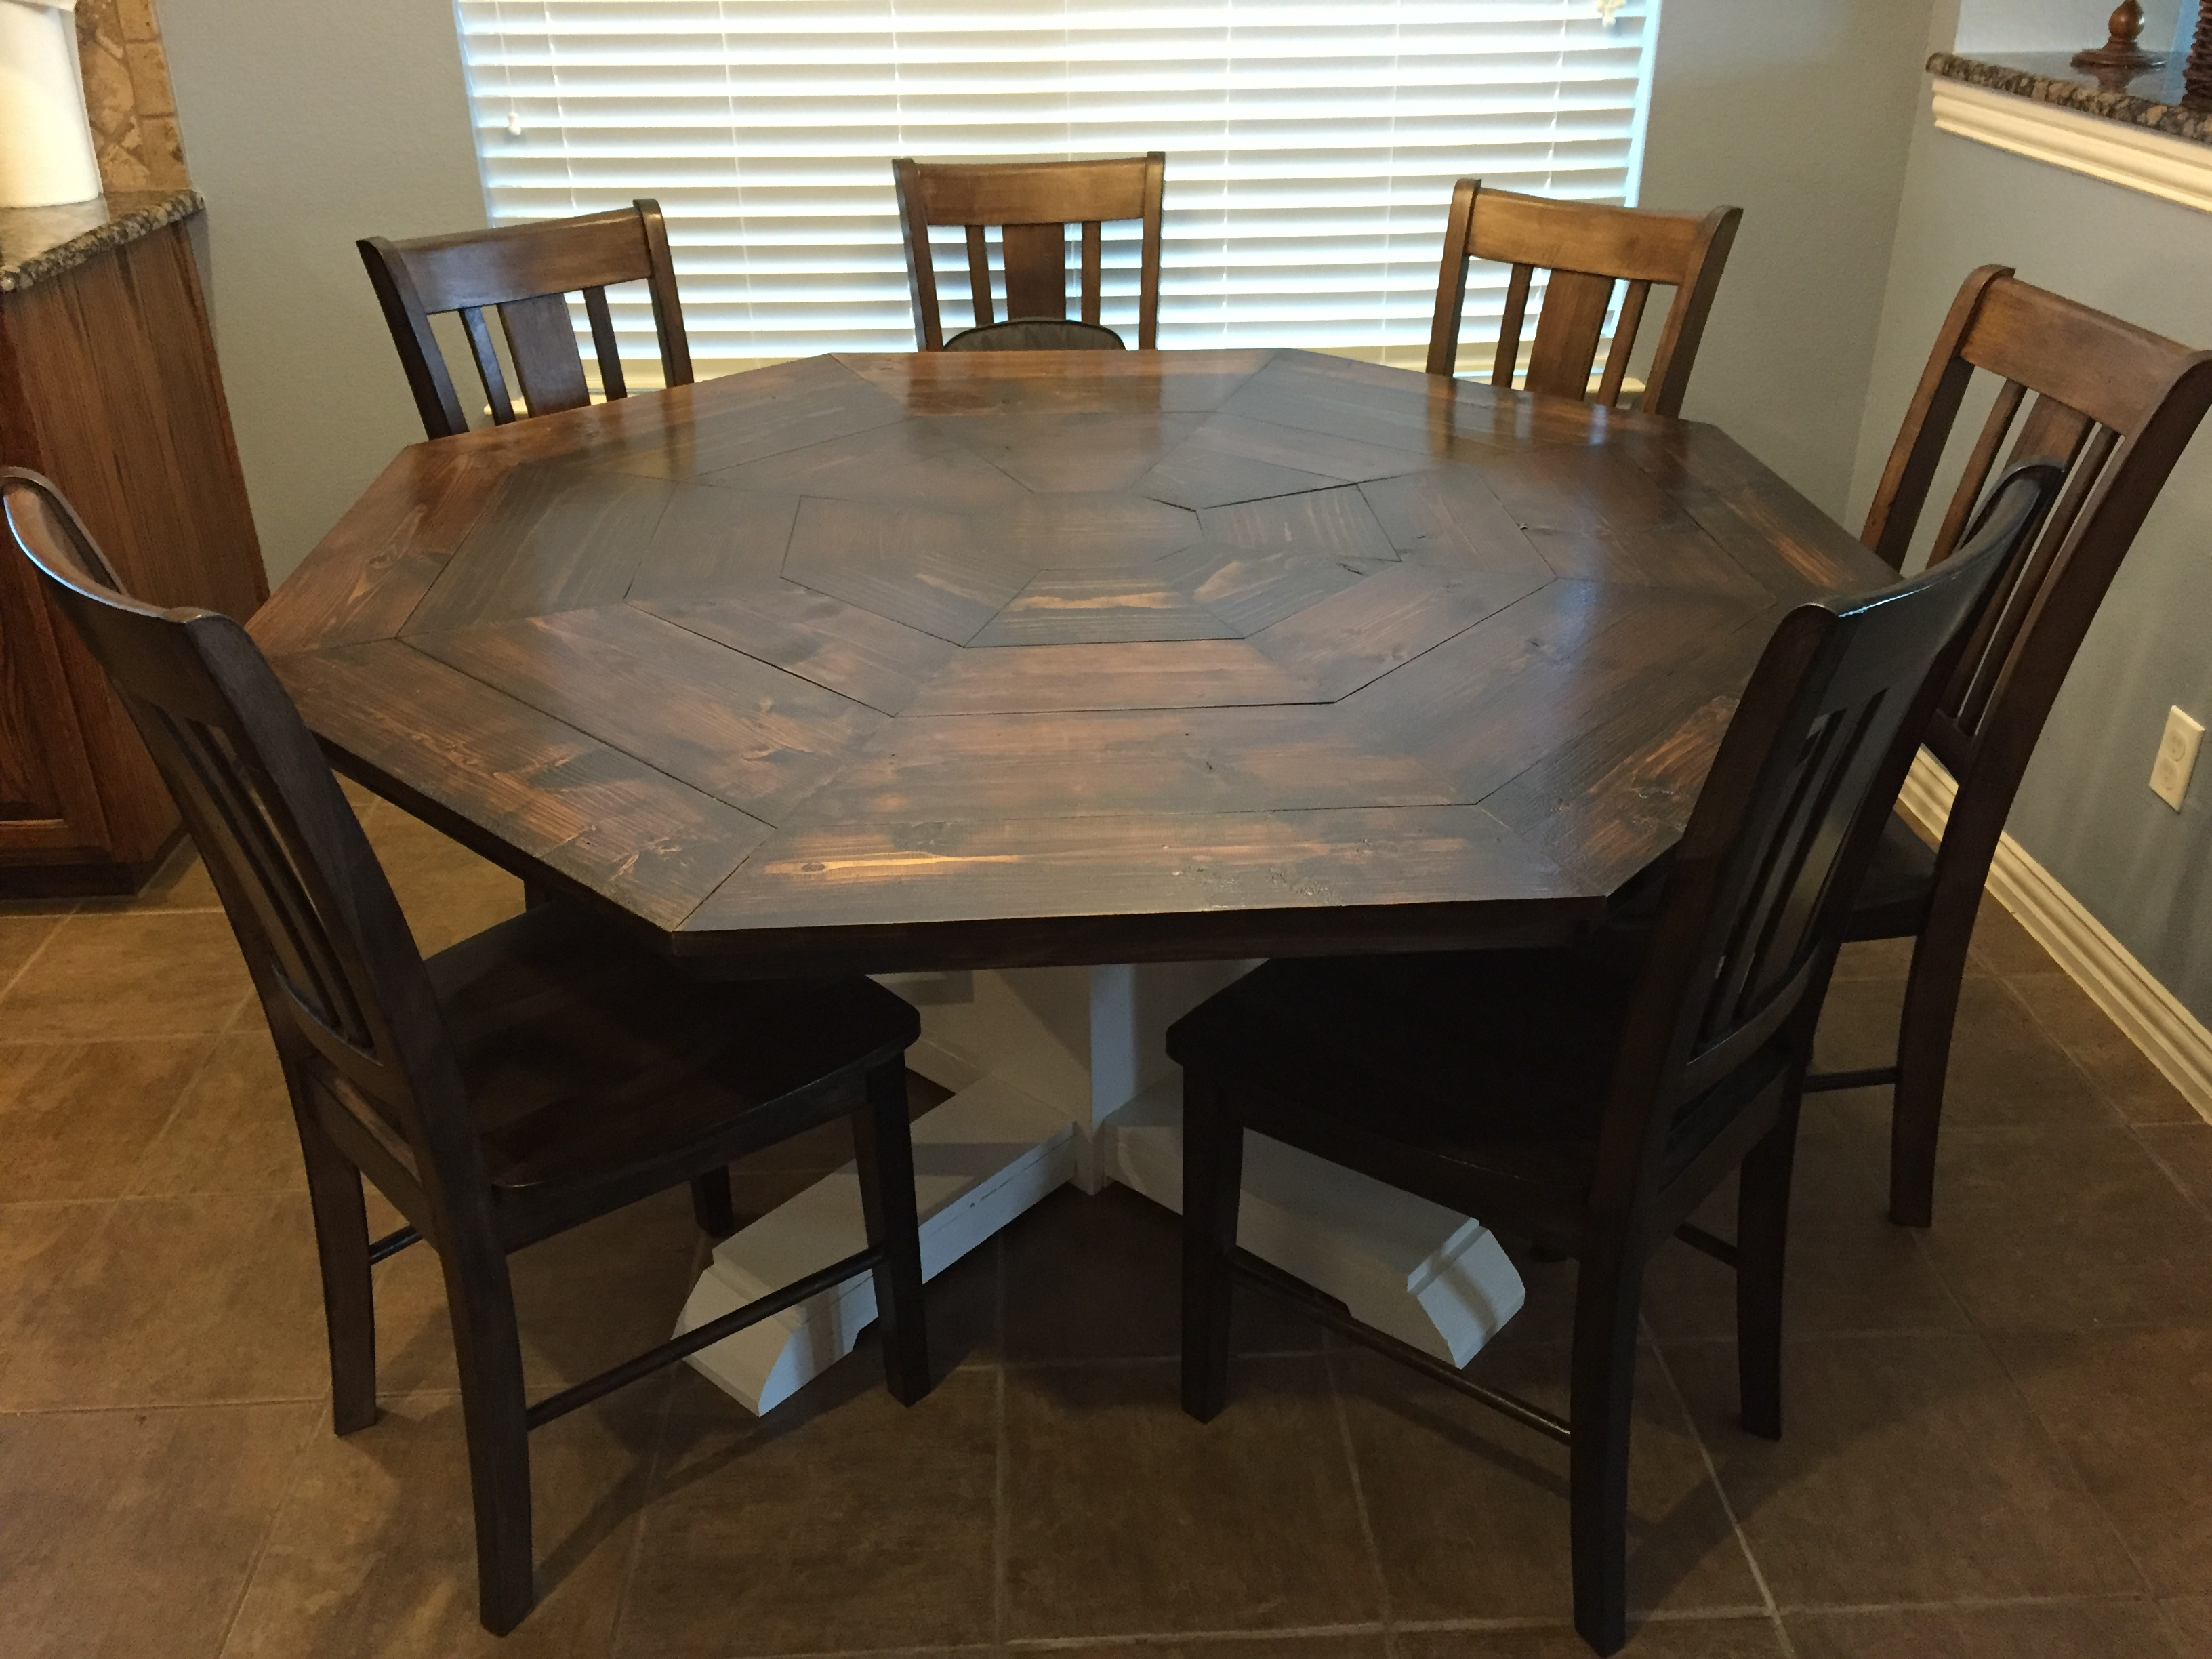 ana white | octagon dining room table - diy projects